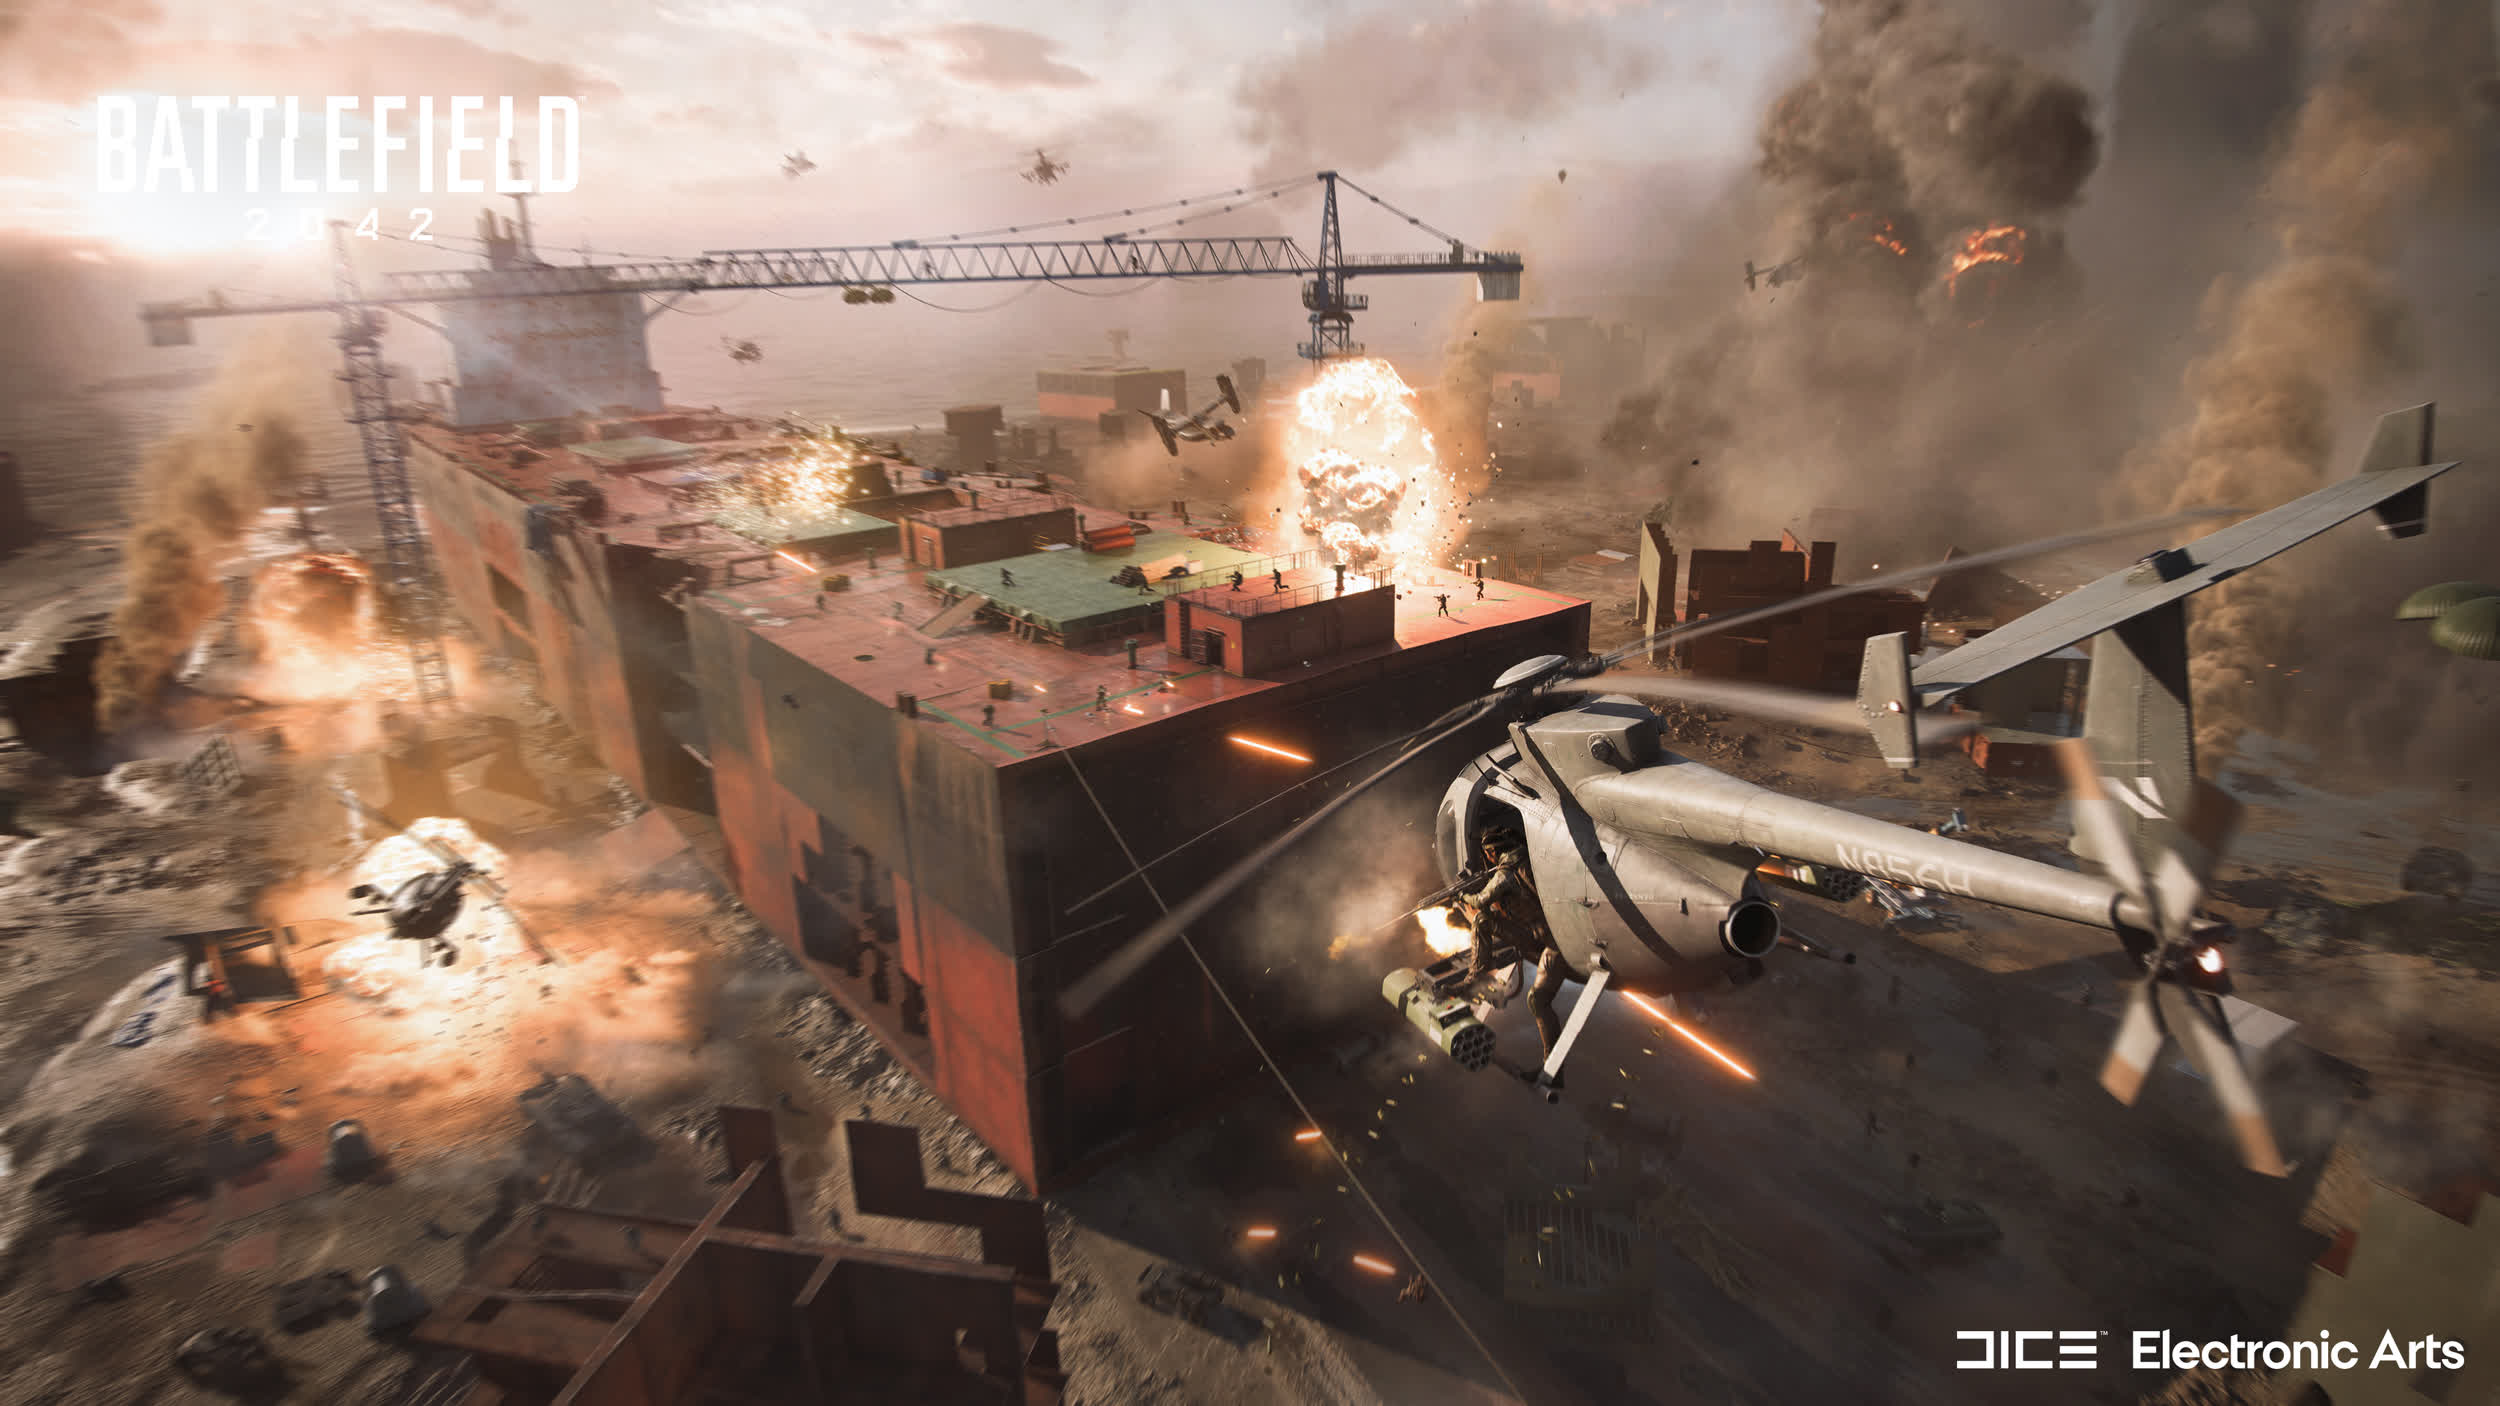 Battlefield 2042 – A multiplayer shooter from the near future with real-time weather, wingsuits, and up to 128 players per game